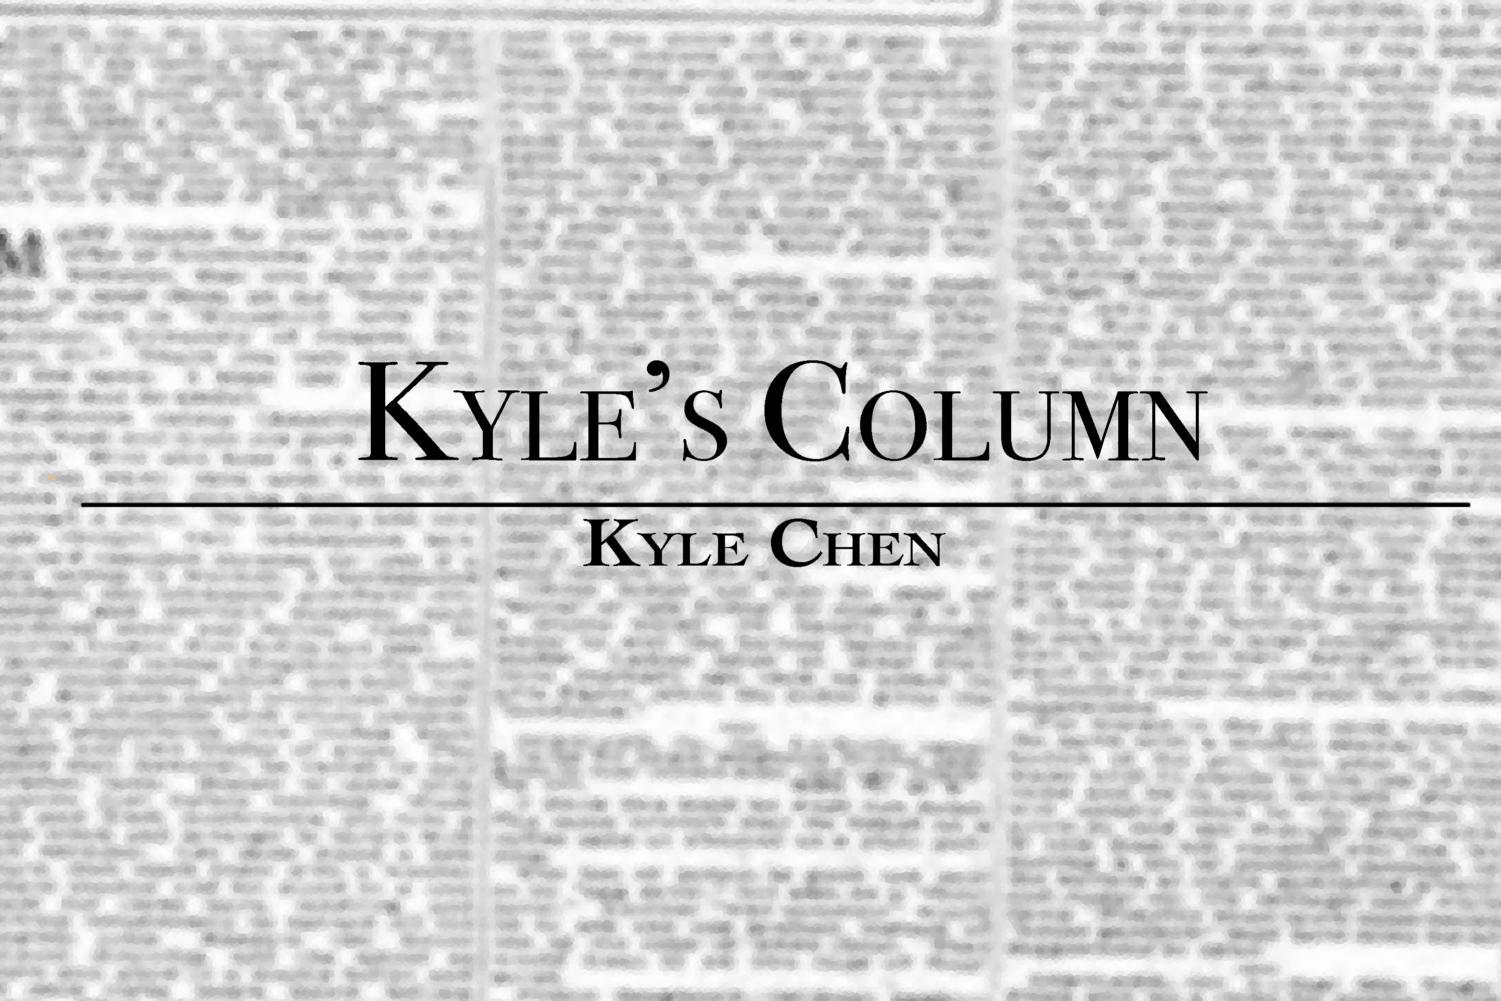 In the latest installment of Kyle's Column, Opinions Editor Kyle Chen ponders the potential of a